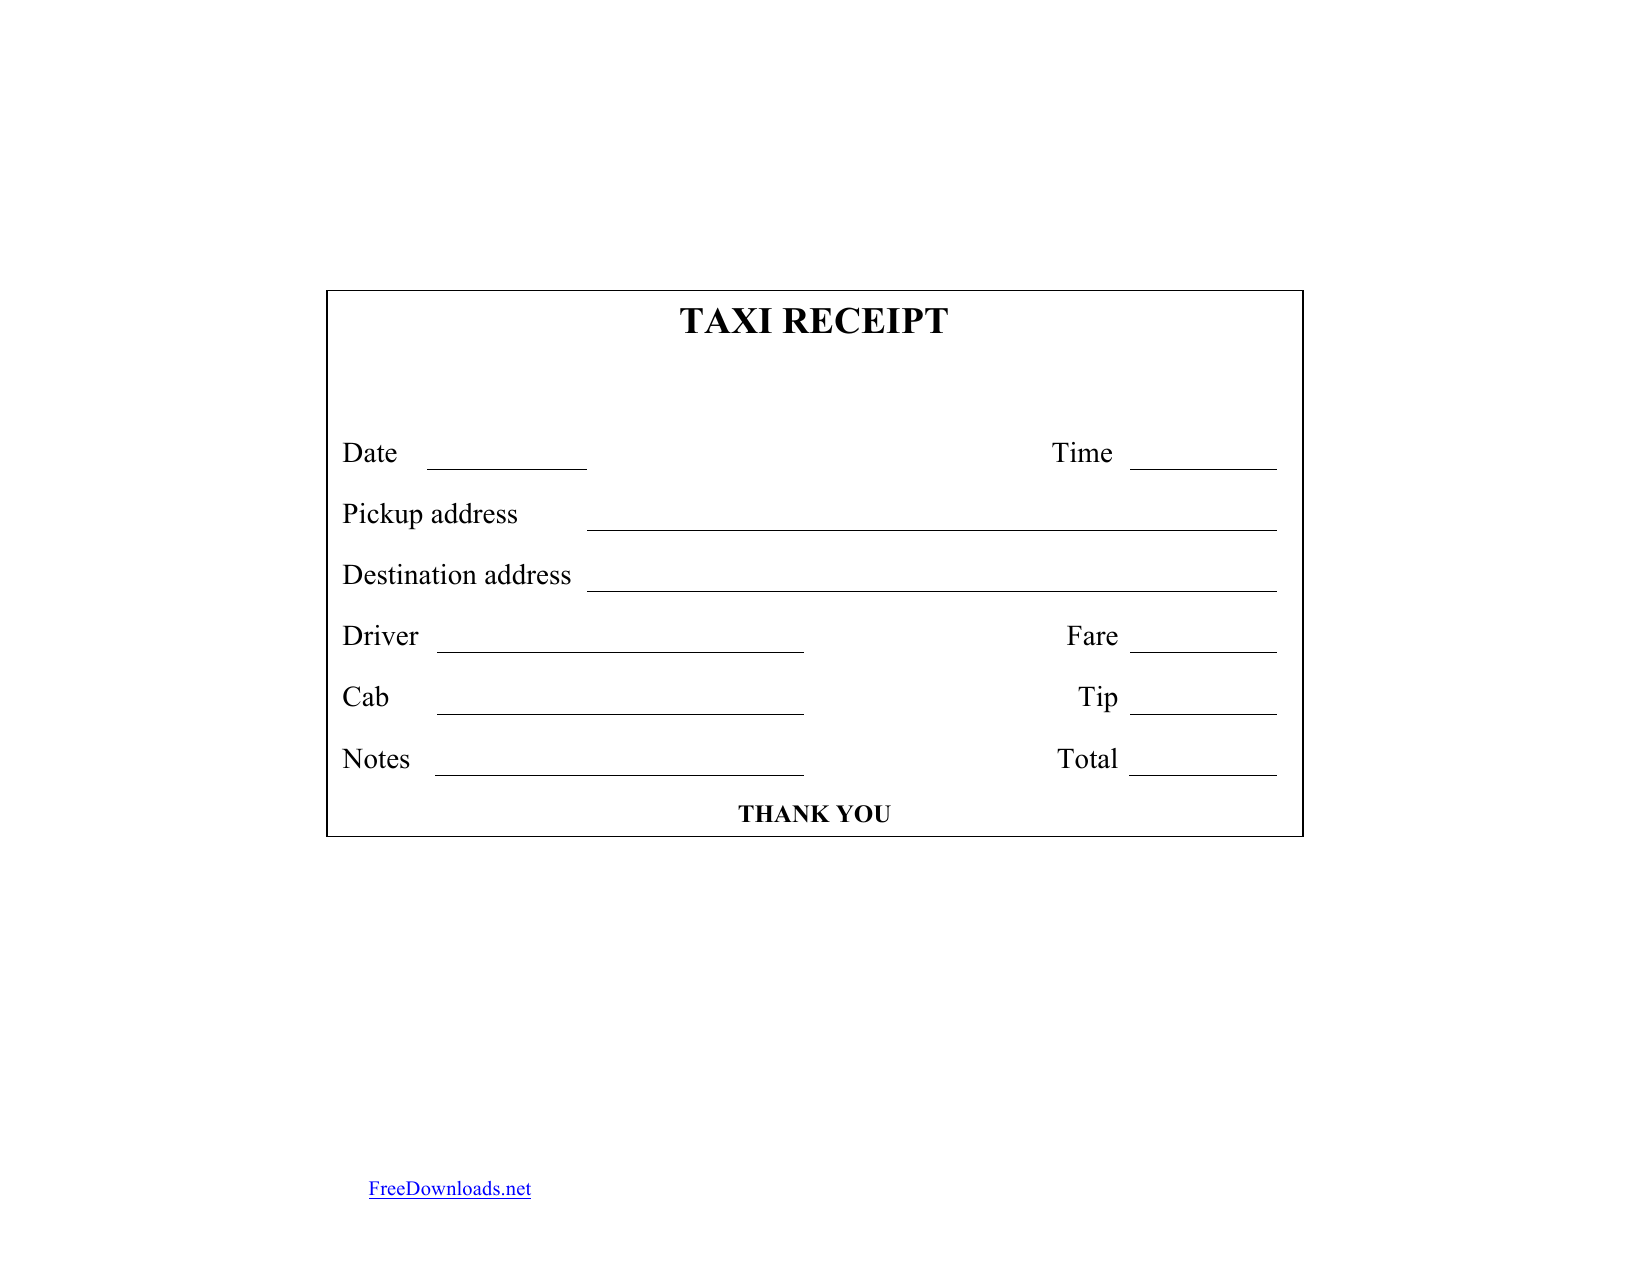 Download Blank Printable Taxi/Cab Receipt Template